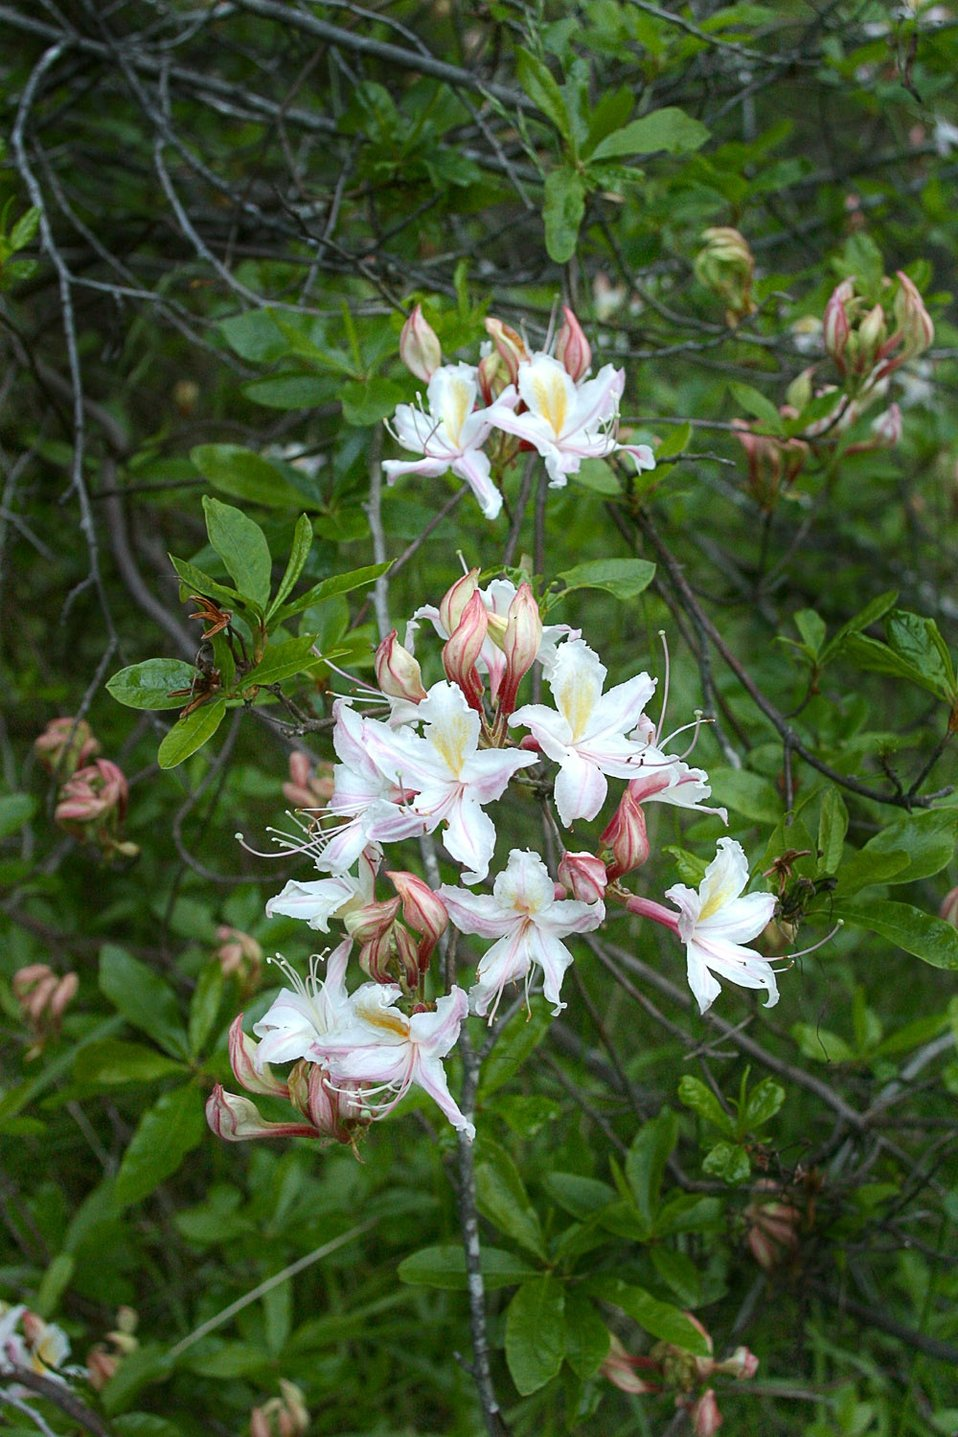 Wild section of the Rogue River from Grave Creek to Foster Bar May 19 to May 22. Azalea across the meadow from Whisky Creek Cabin.  Photo by John Craig